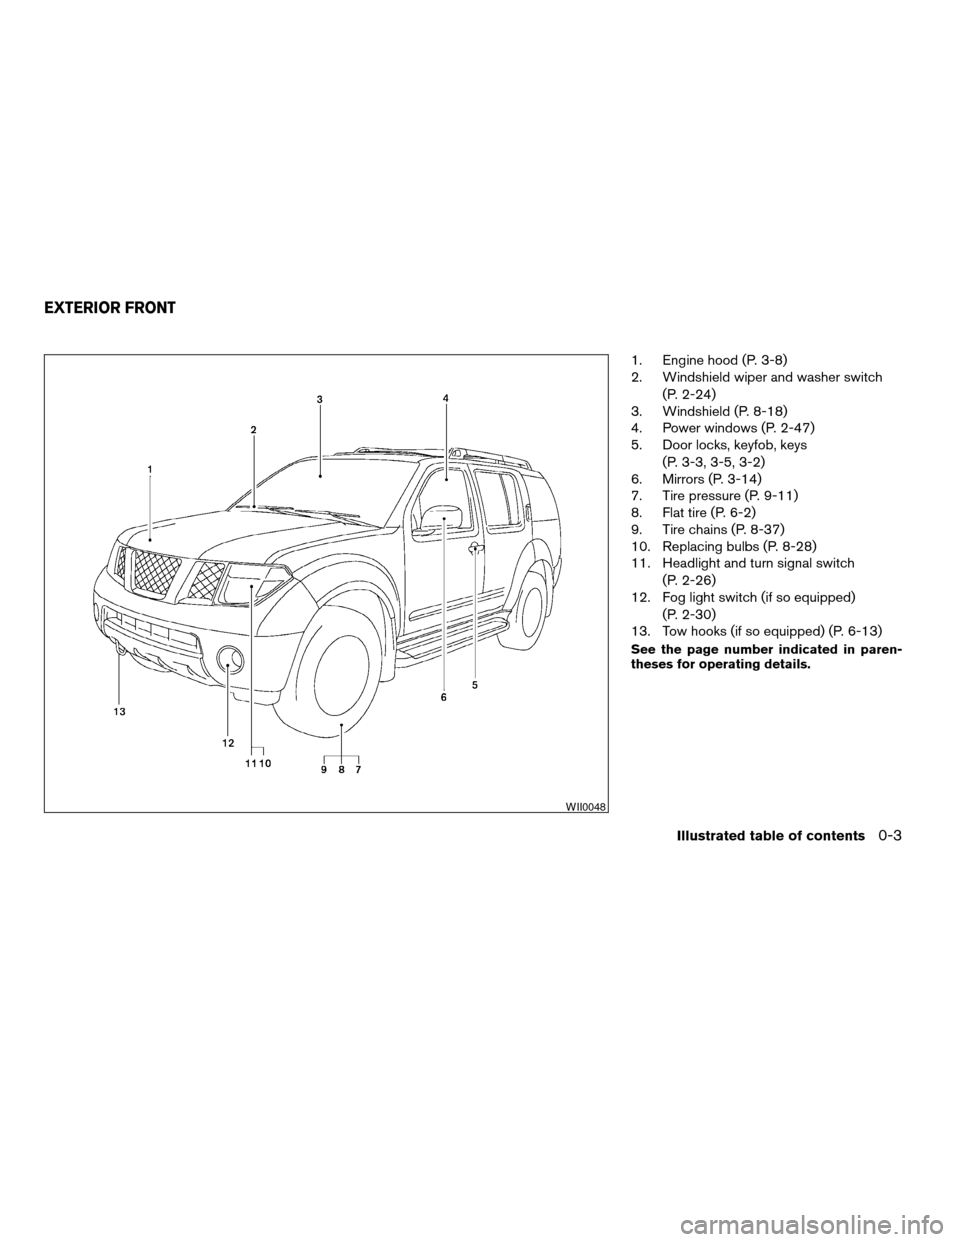 NISSAN PATHFINDER 2006 R51 / 3.G Owners Manual